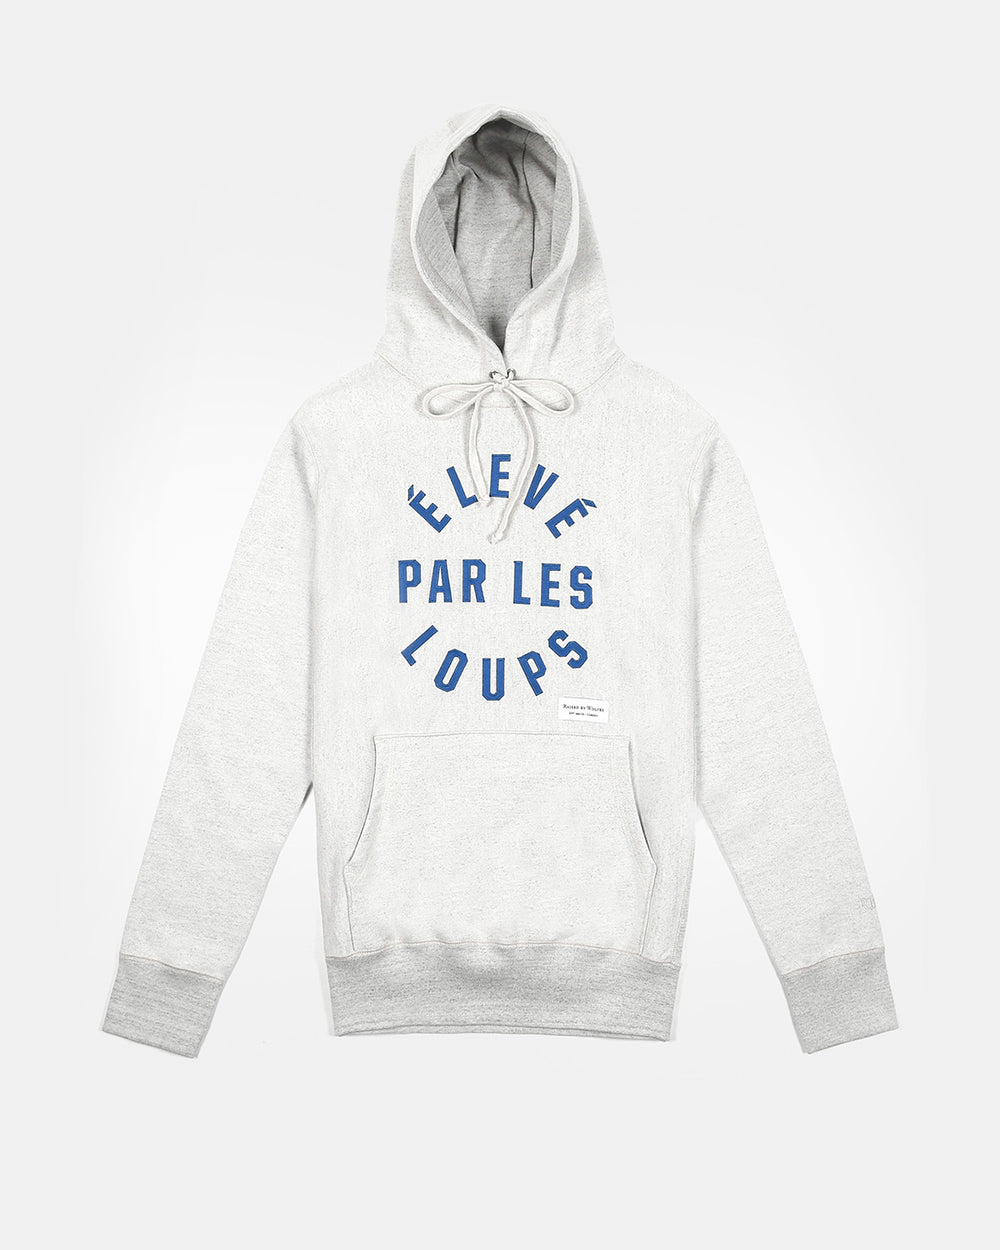 Raised By Wolves - Eleve Par Les Loups Hooded Sweatshirt (Heather Ash)